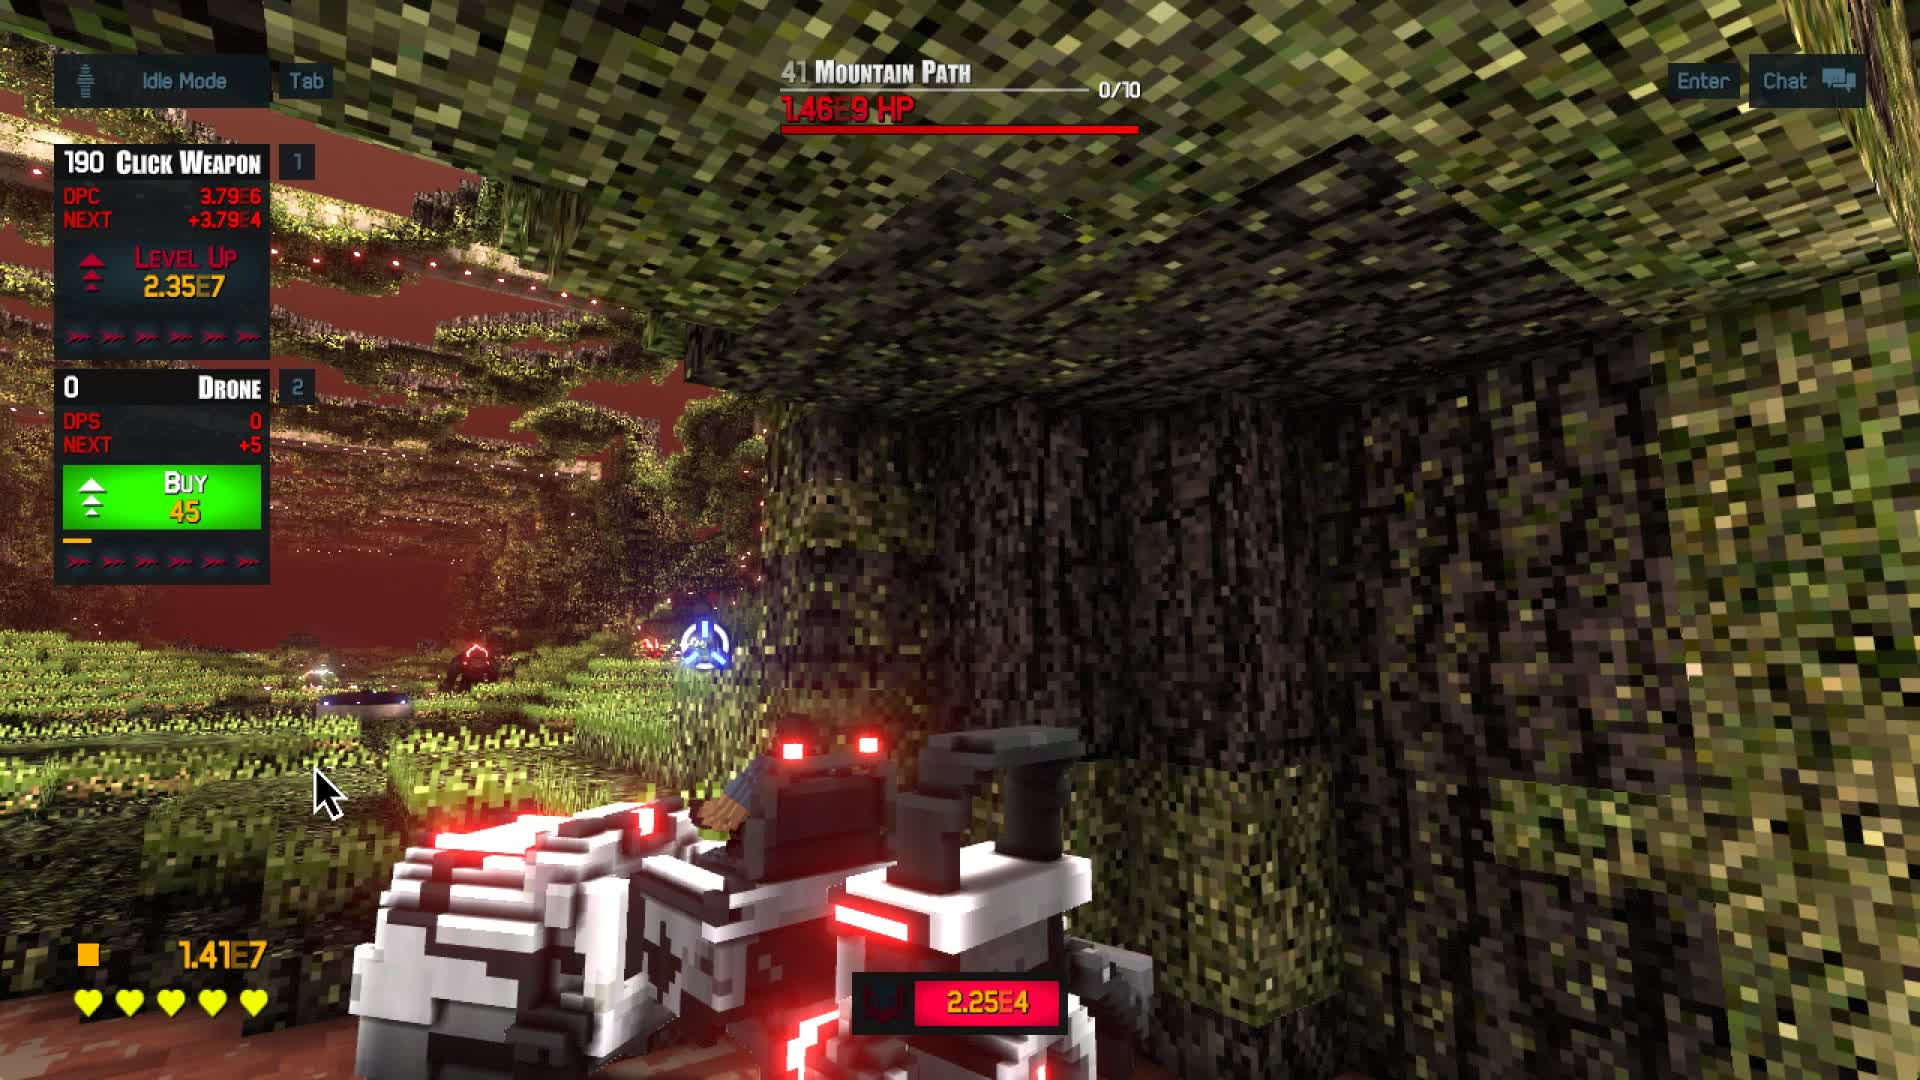 Clicker, FPS, Game, Idle, Incremental, Proton Studio, RPG, Time Clickers 2, Time Warpers, Video Game, Time Warpers Hoverbike GIFs